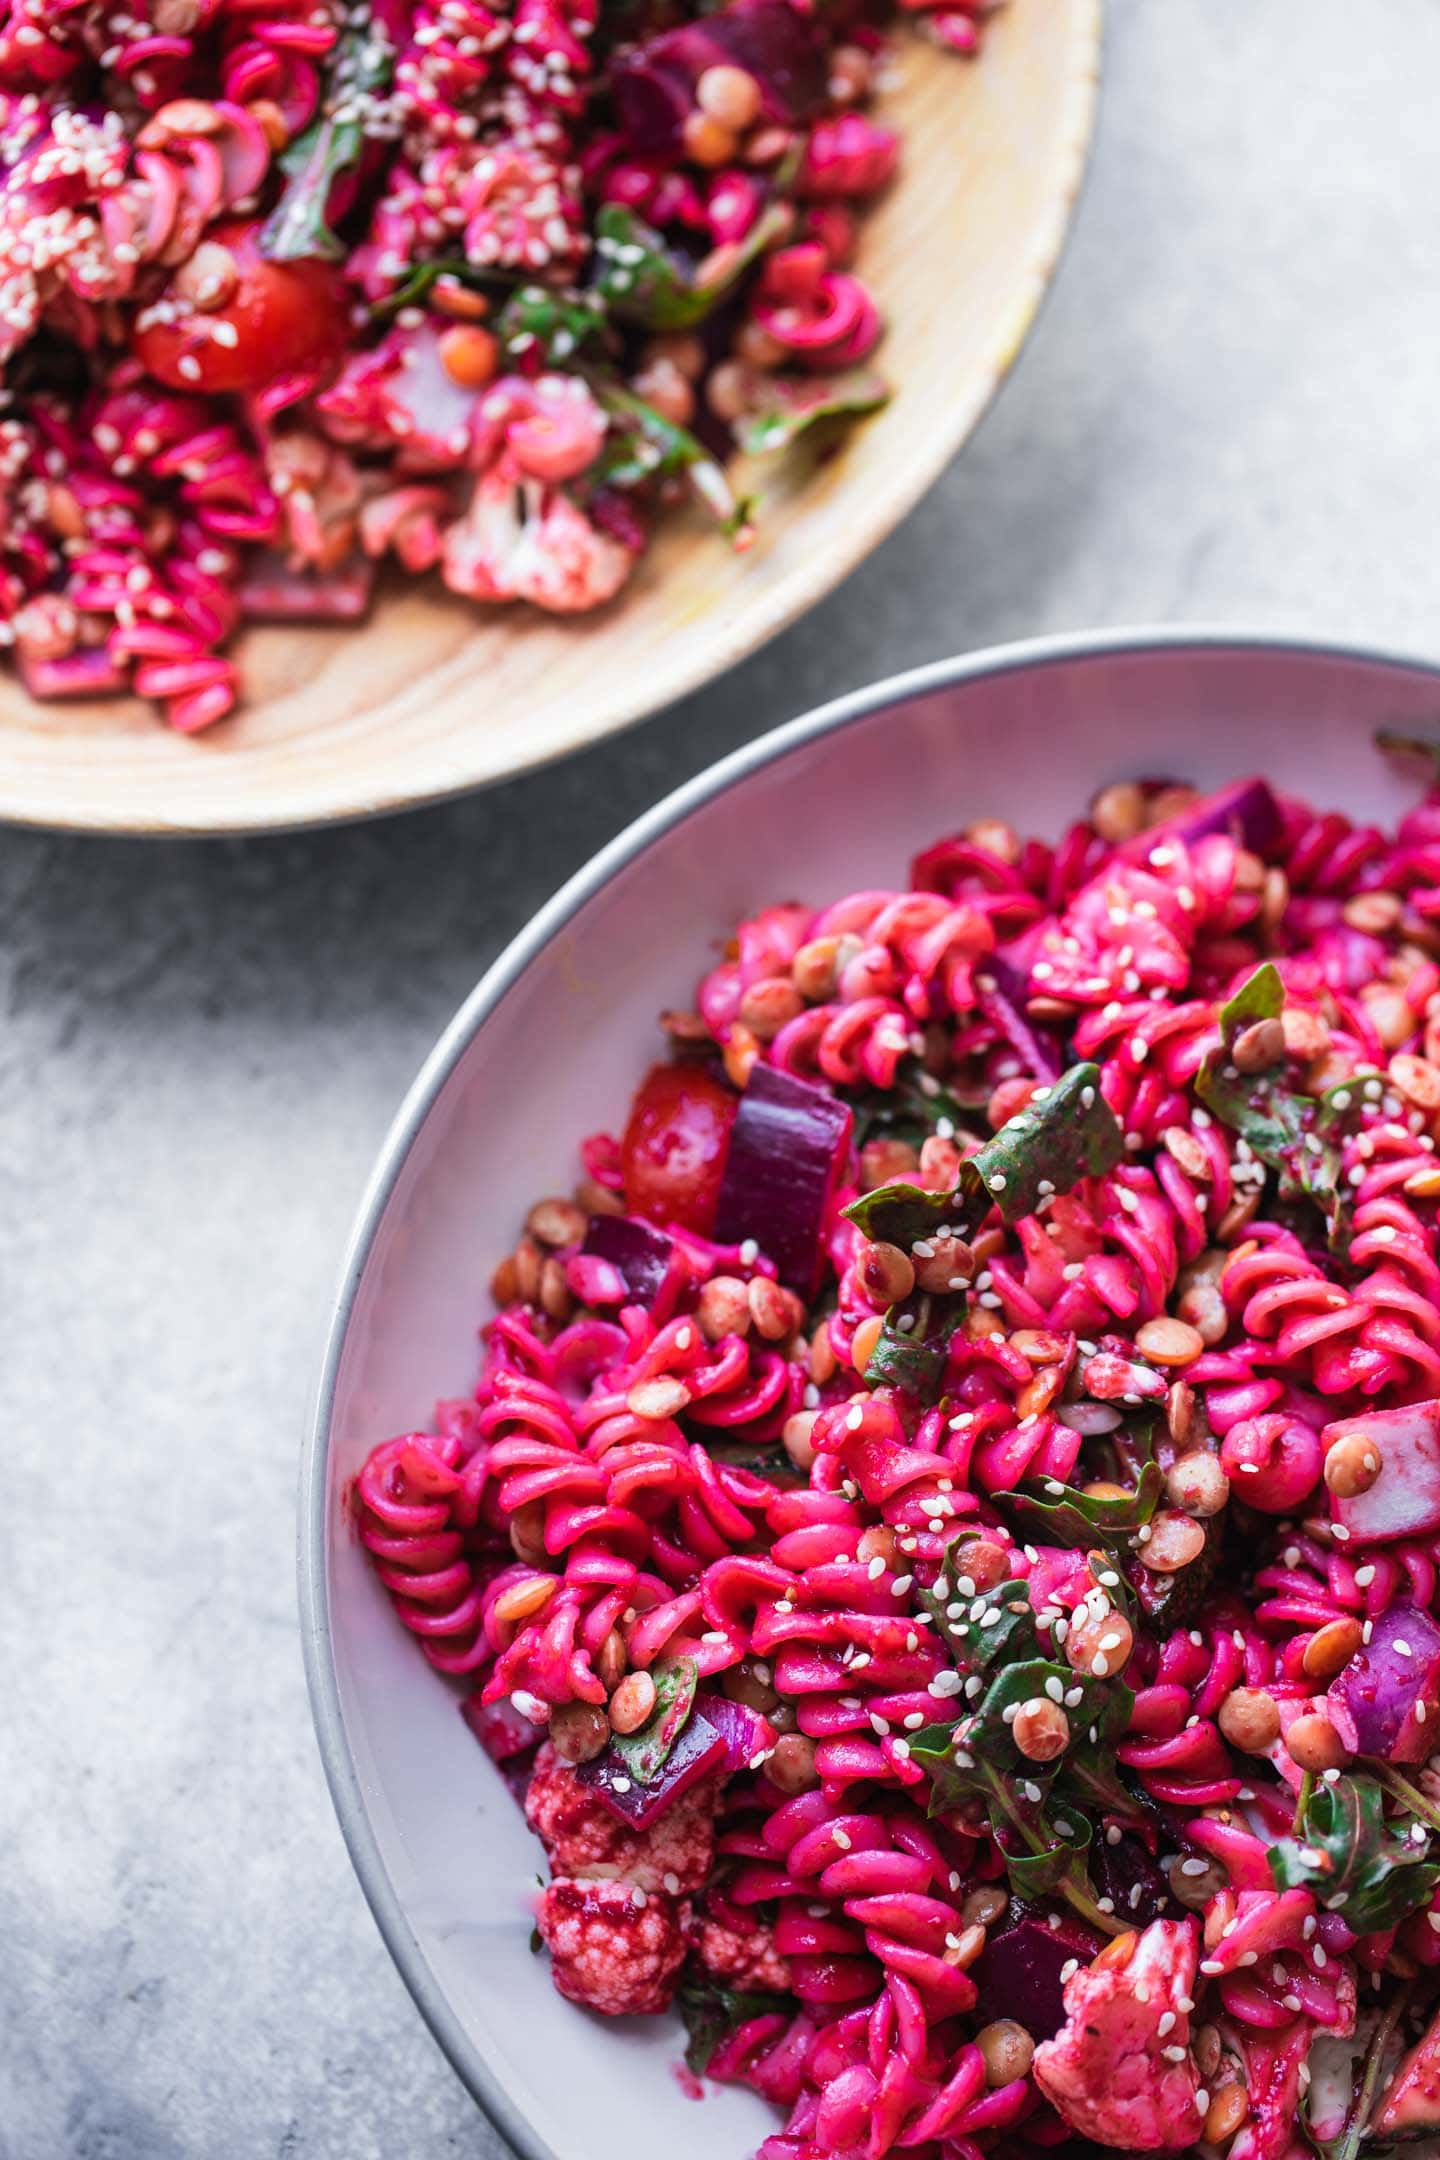 Two bowls of pasta salad with lentils and vegetables